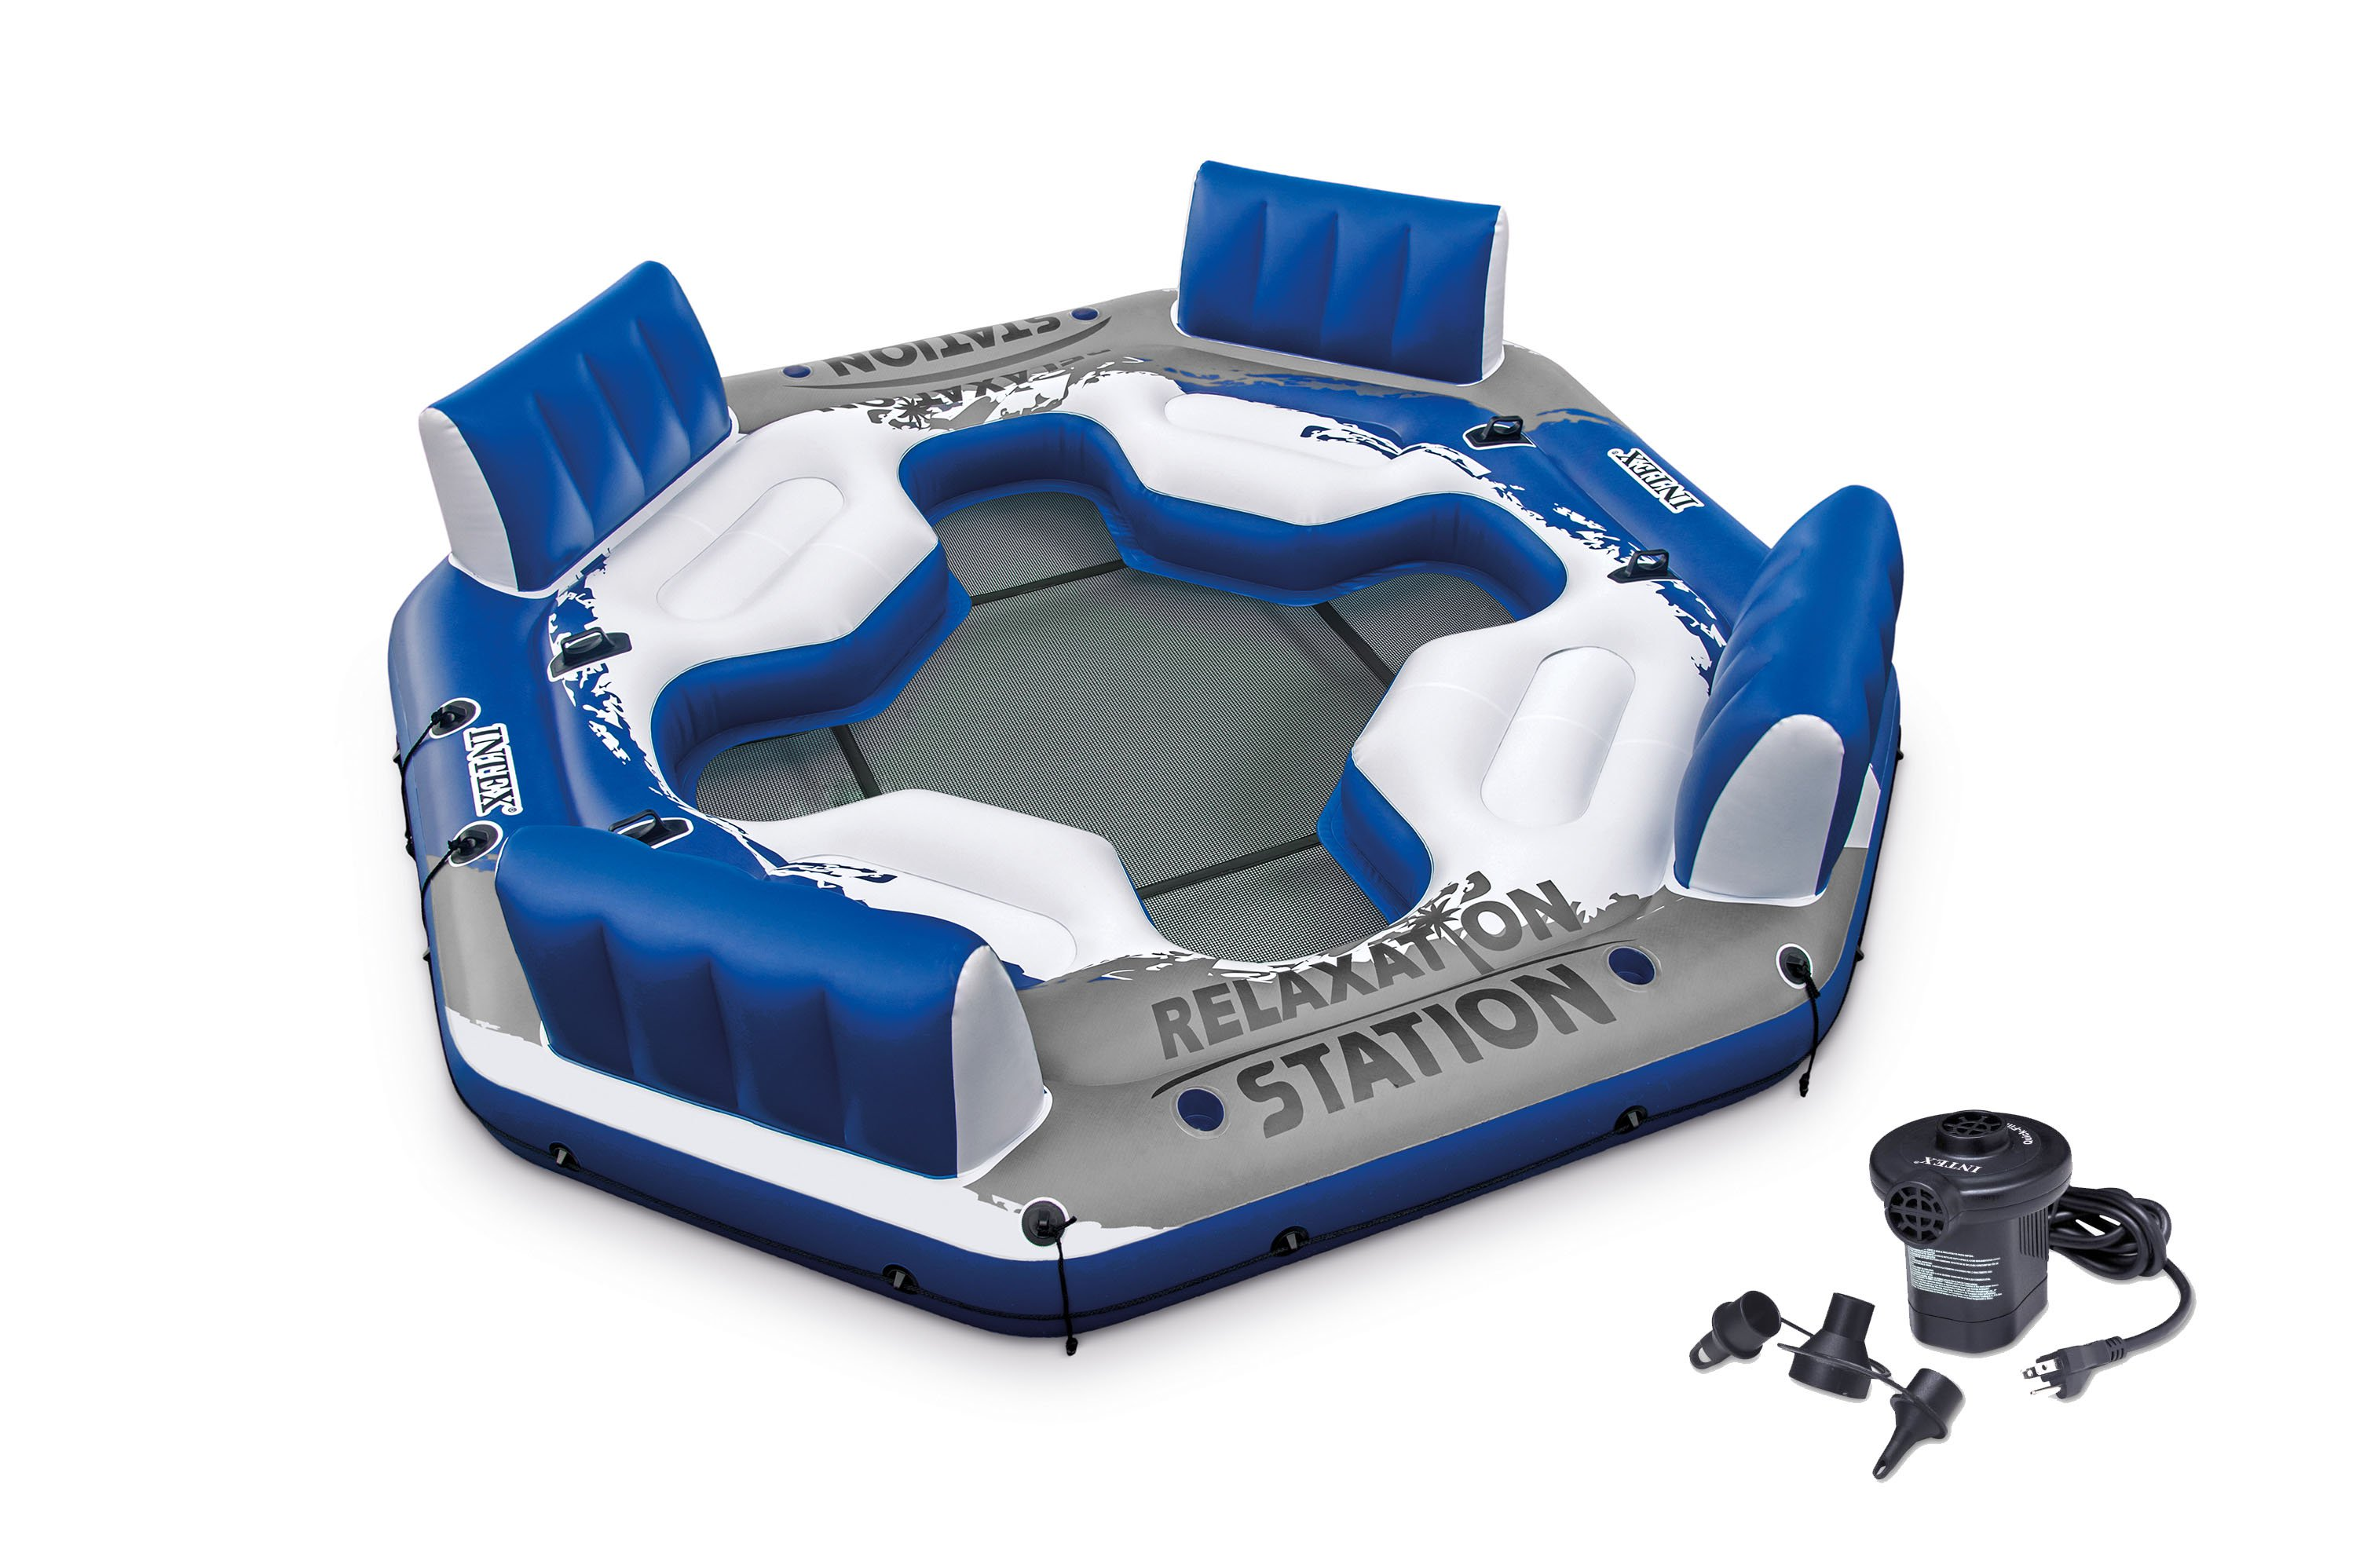 Intex Pacific Paradise Relaxation Station Water Lounge 4-Person Raft w  Air Pump by Intex